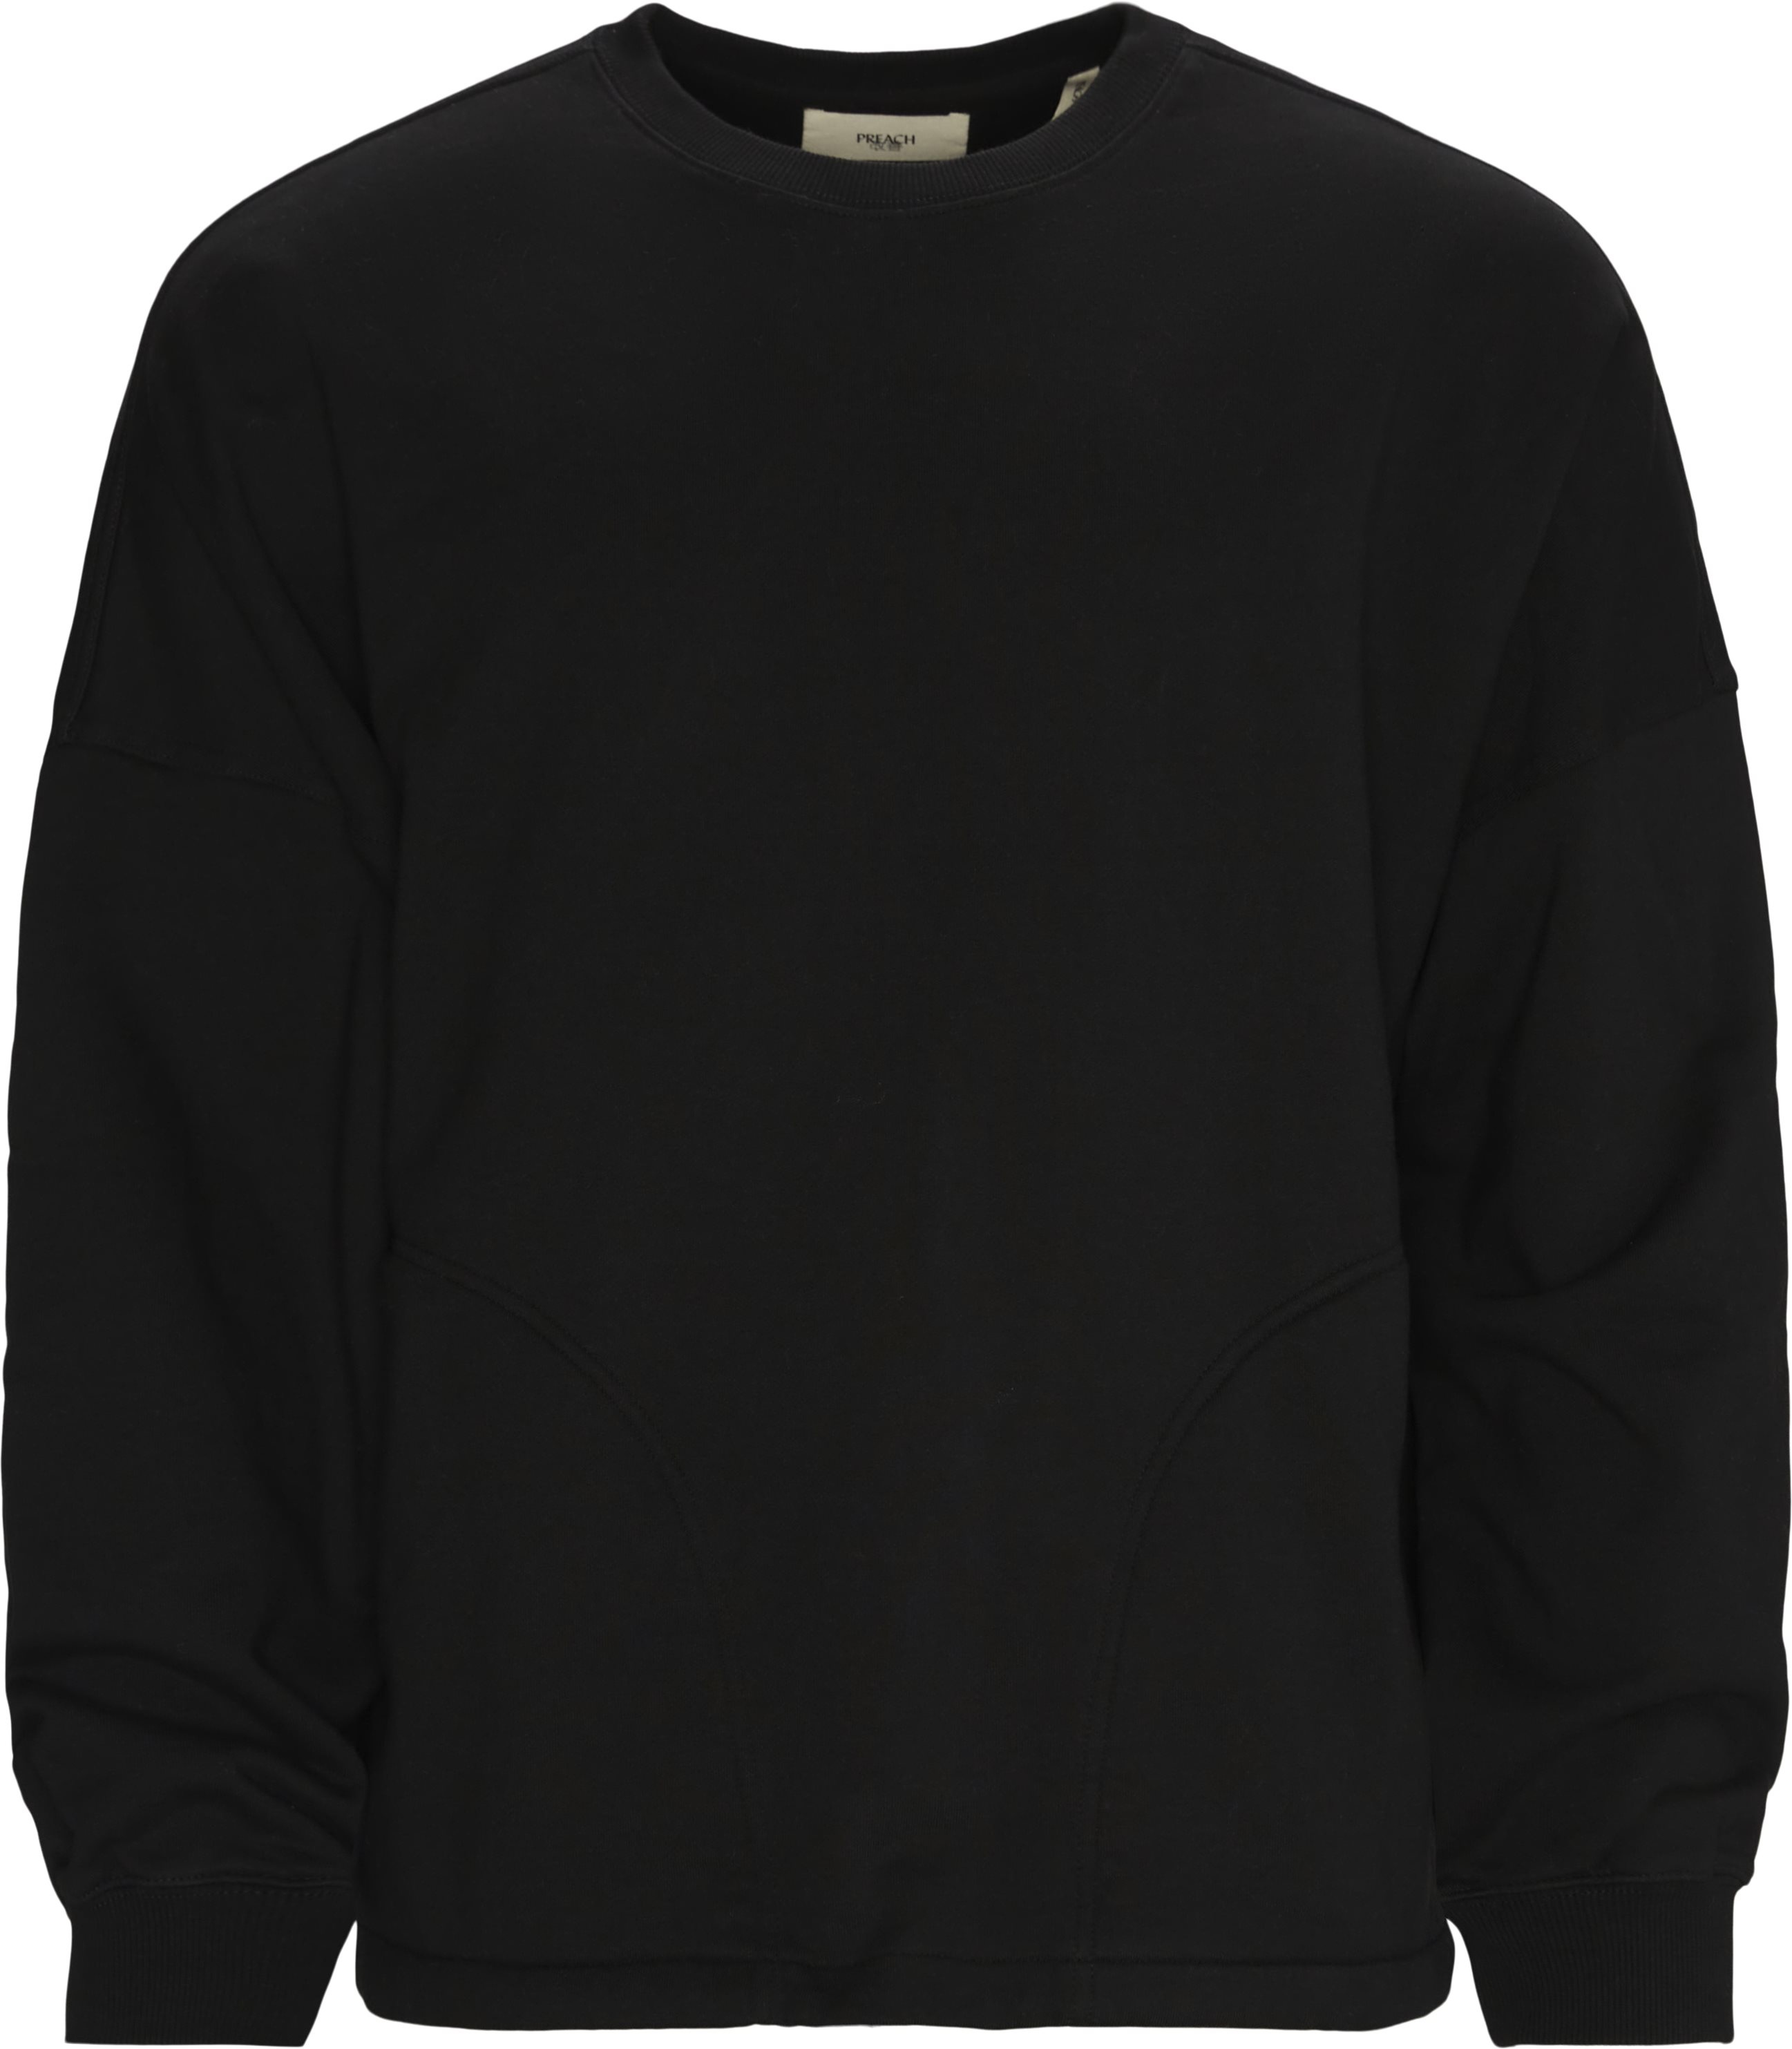 Oversized Sidepocket Crewneck  - Sweatshirts - Oversized - Sort